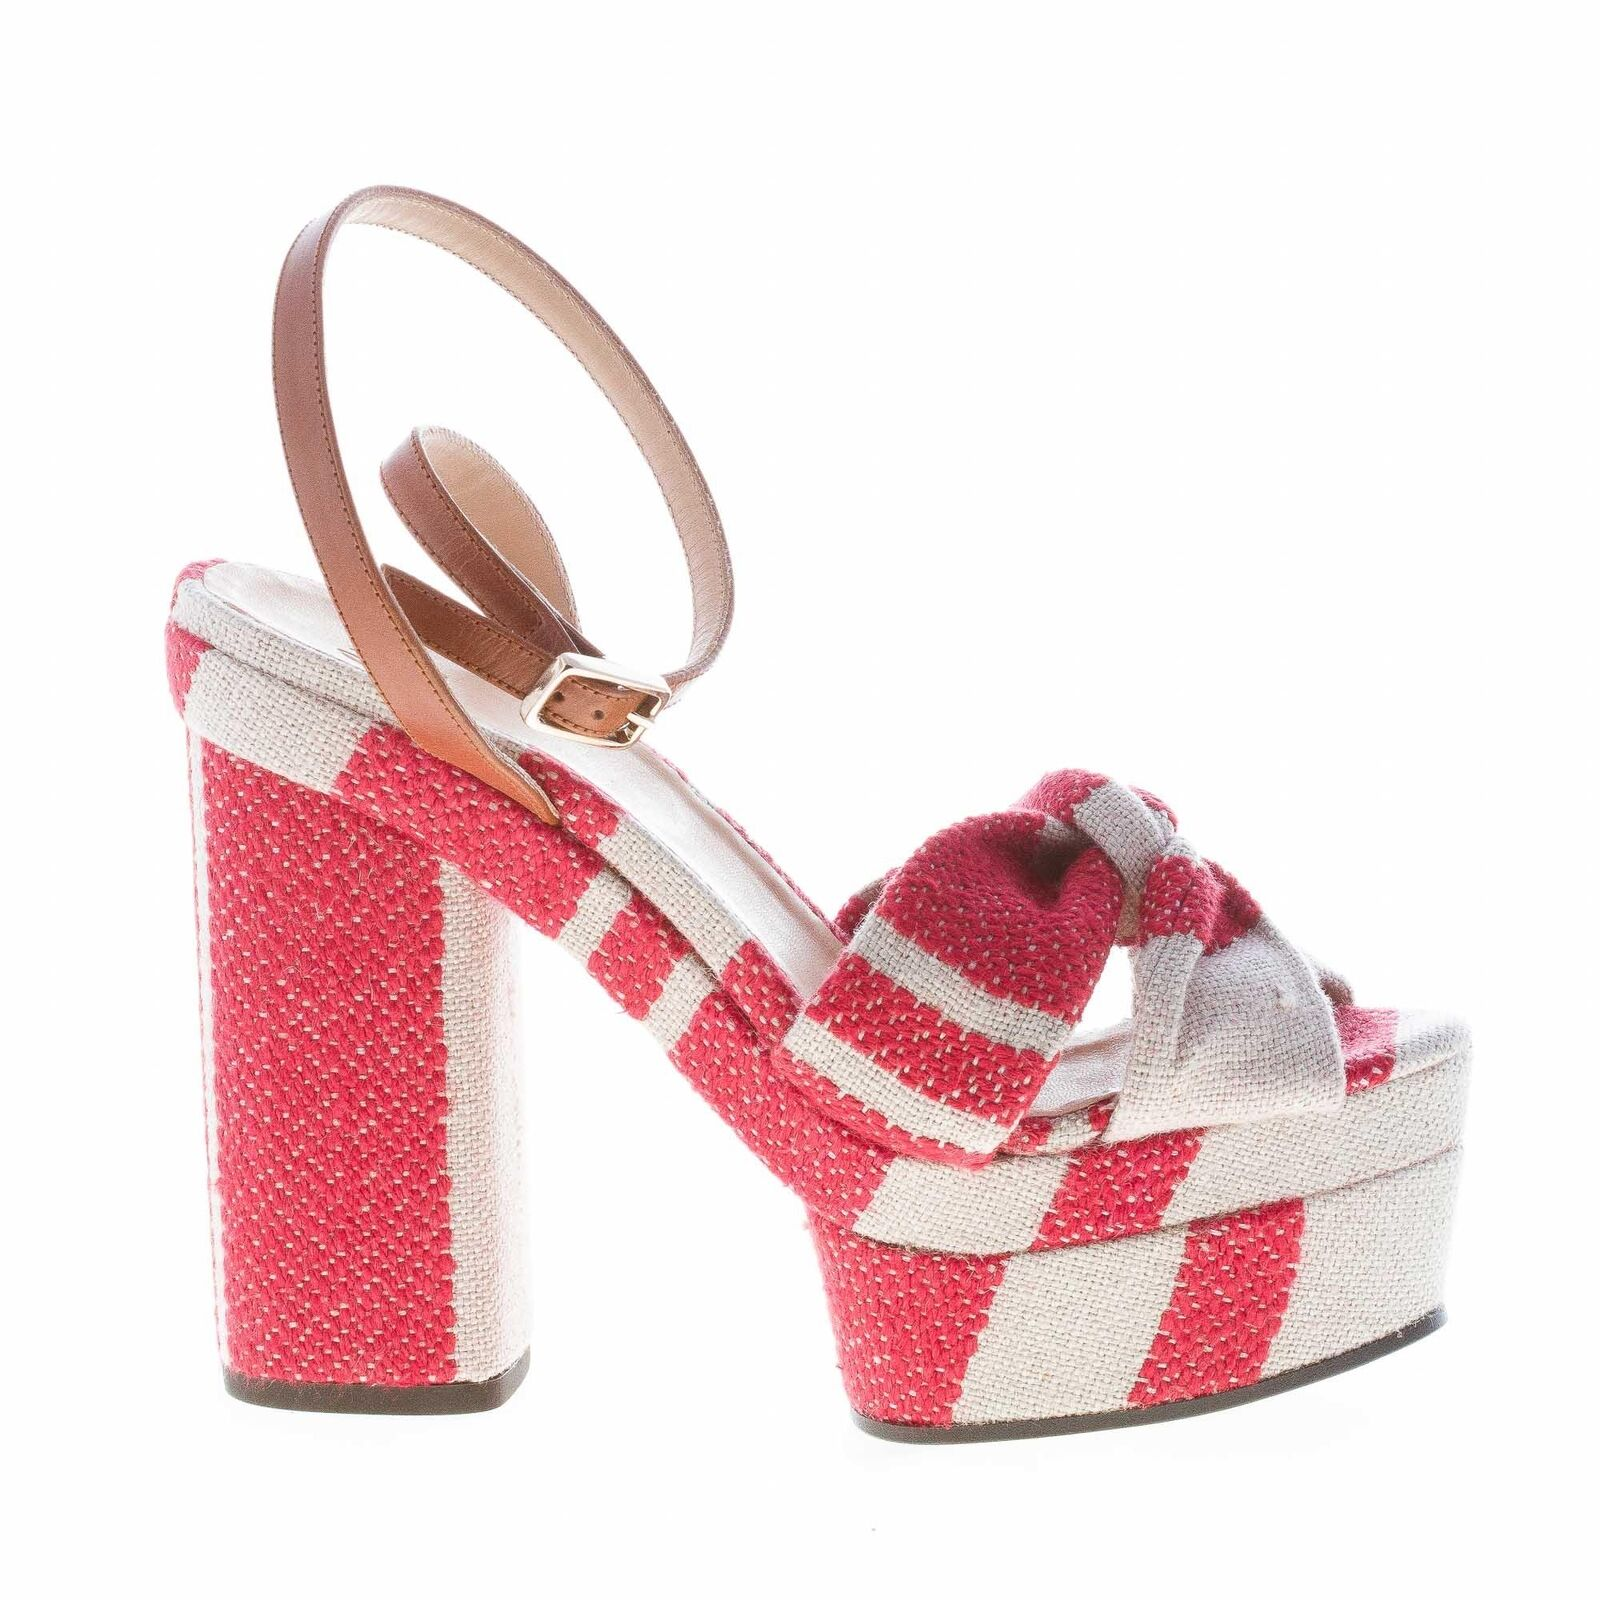 CASTANER women shoes Red and beige striped canvas platform sandal knot AMAIA318